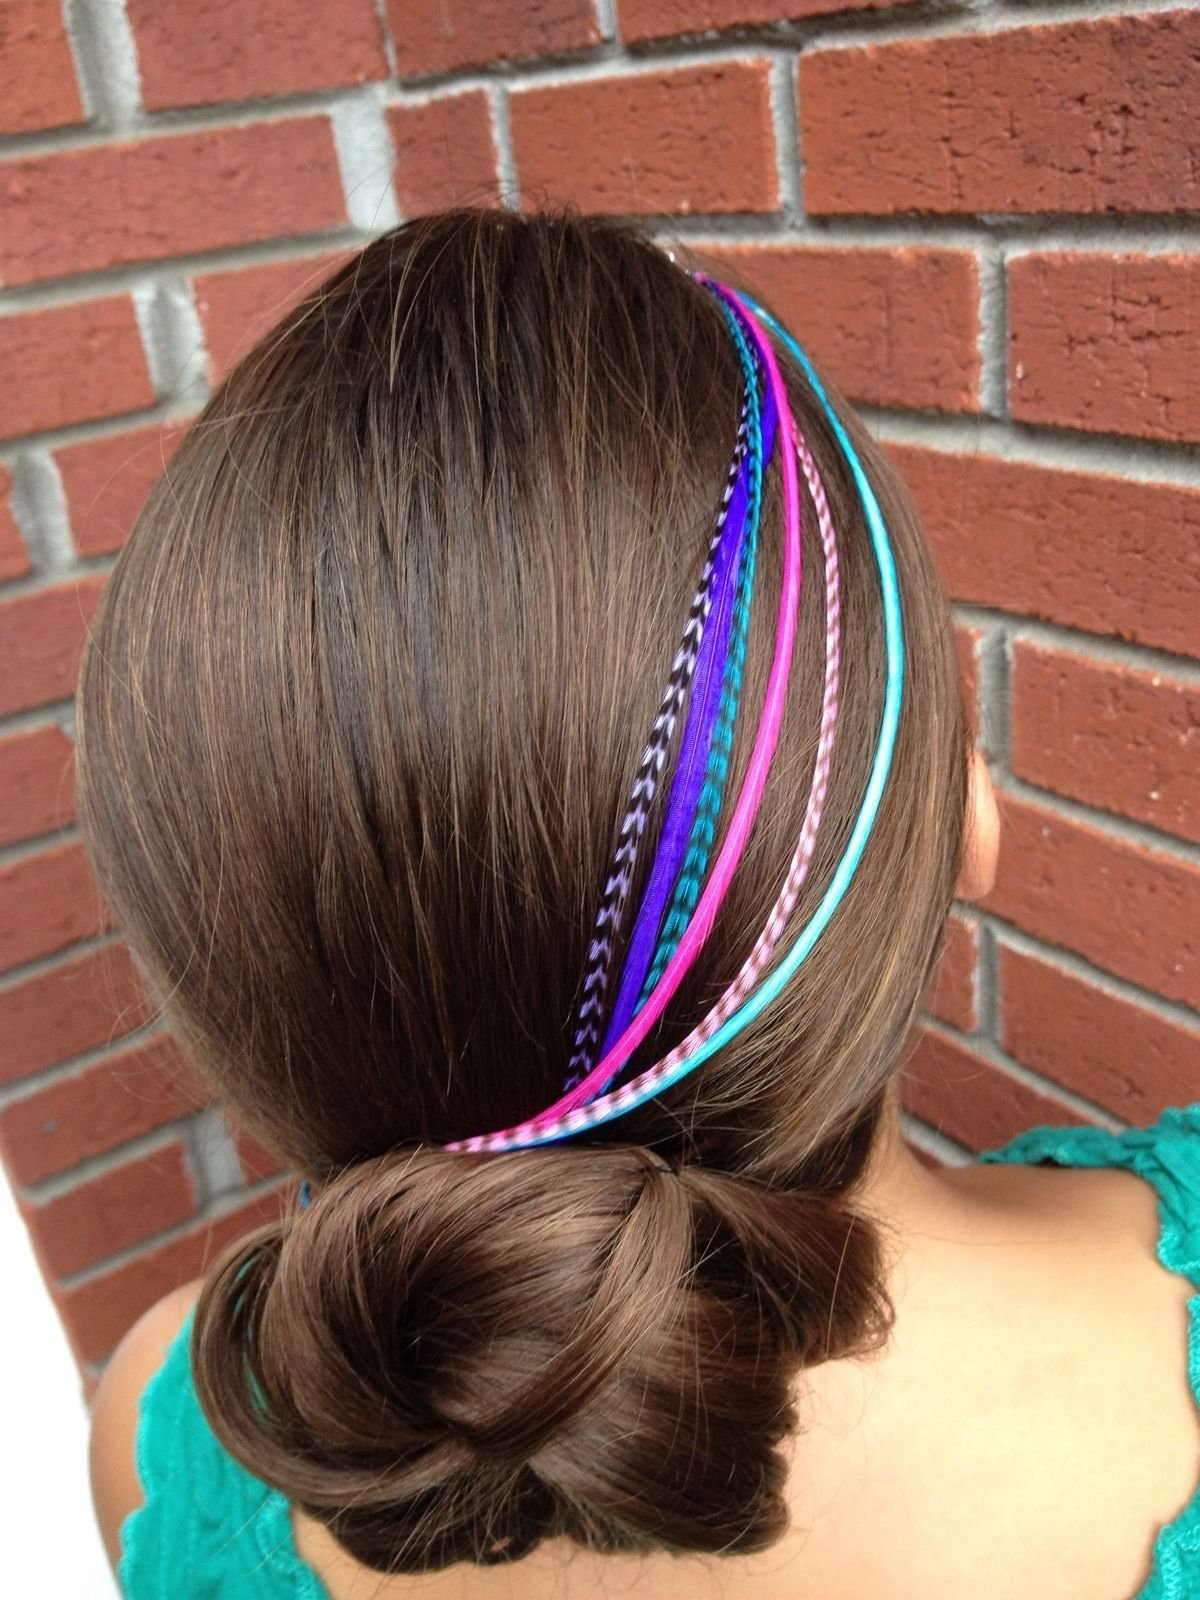 Feather Hair Extensions, 100% Real Rooster Feathers, Long Pink, Purple, Blue Colors, 20 Feathers with Bonus FREE Beads and Loop Tool Kit by Feather Lily (Image #7)